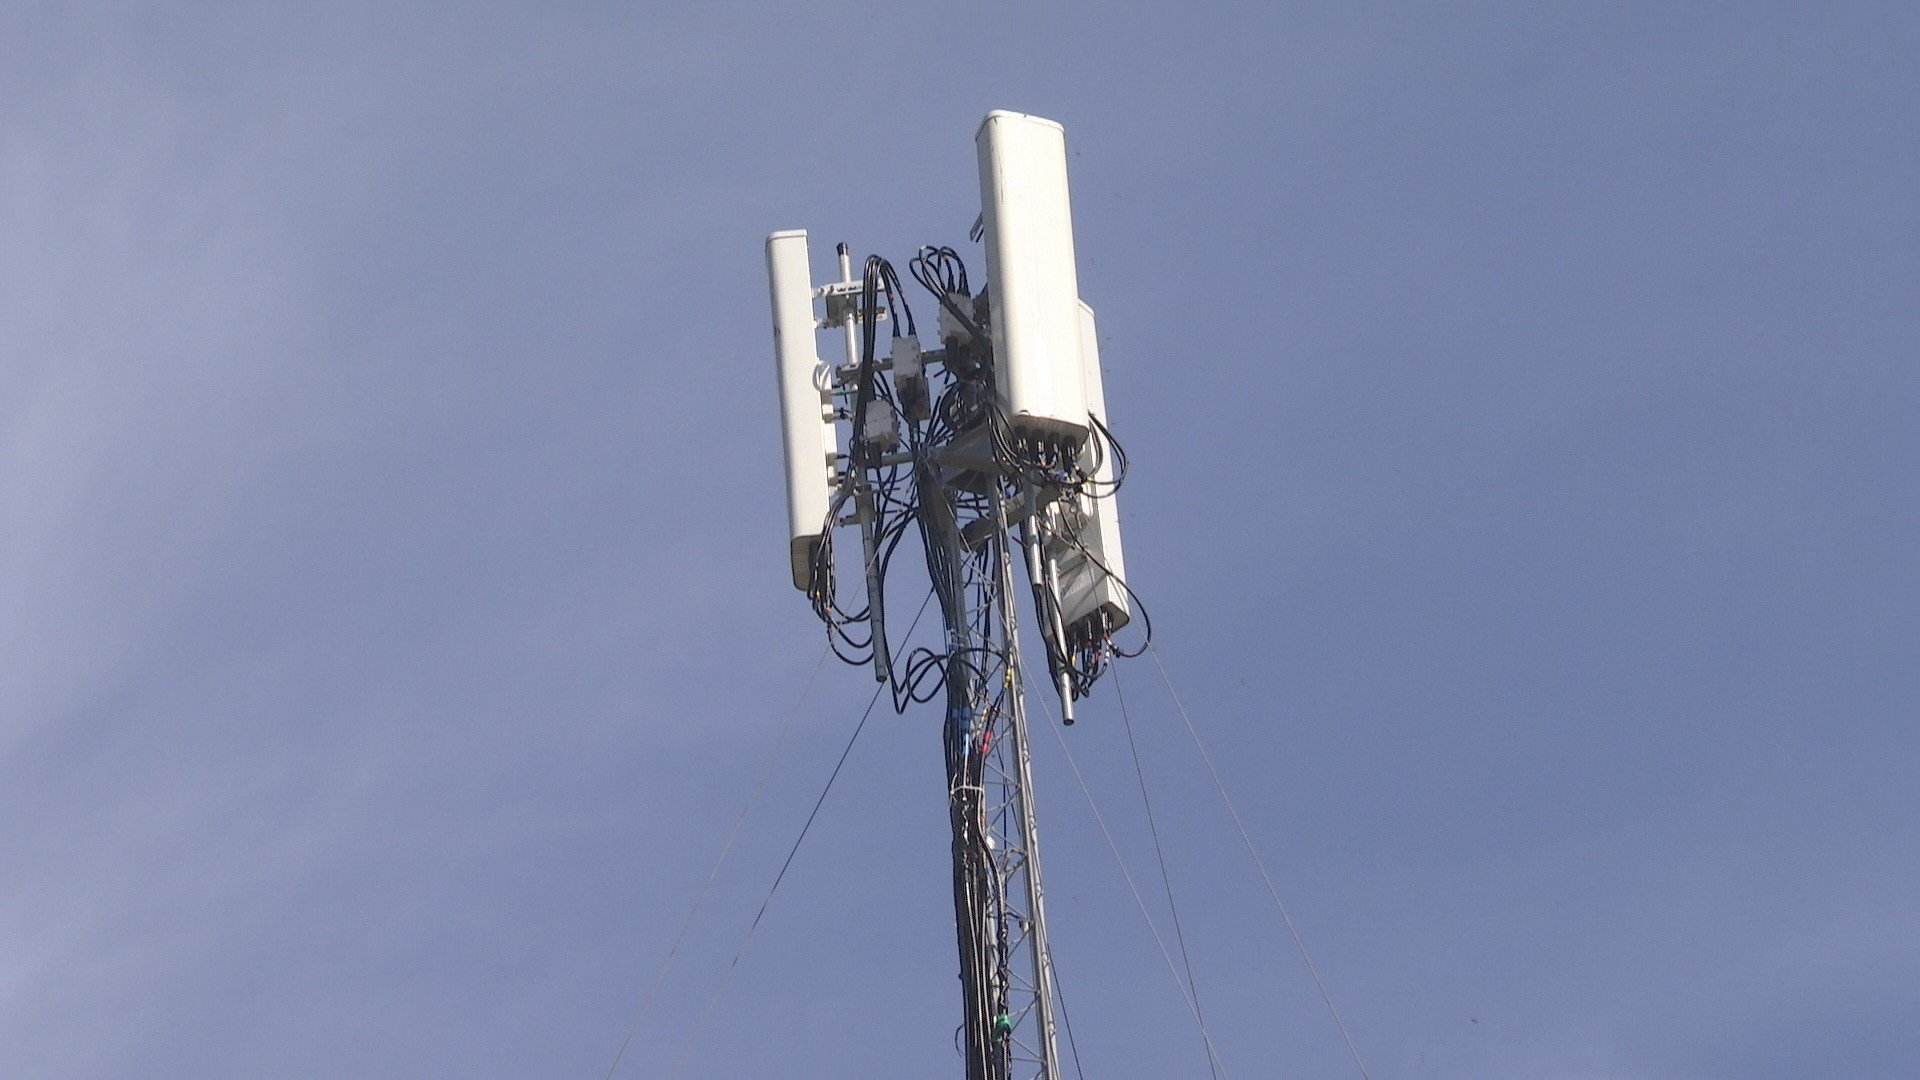 Temporary cell phone tower (Photo: FOX10 News)